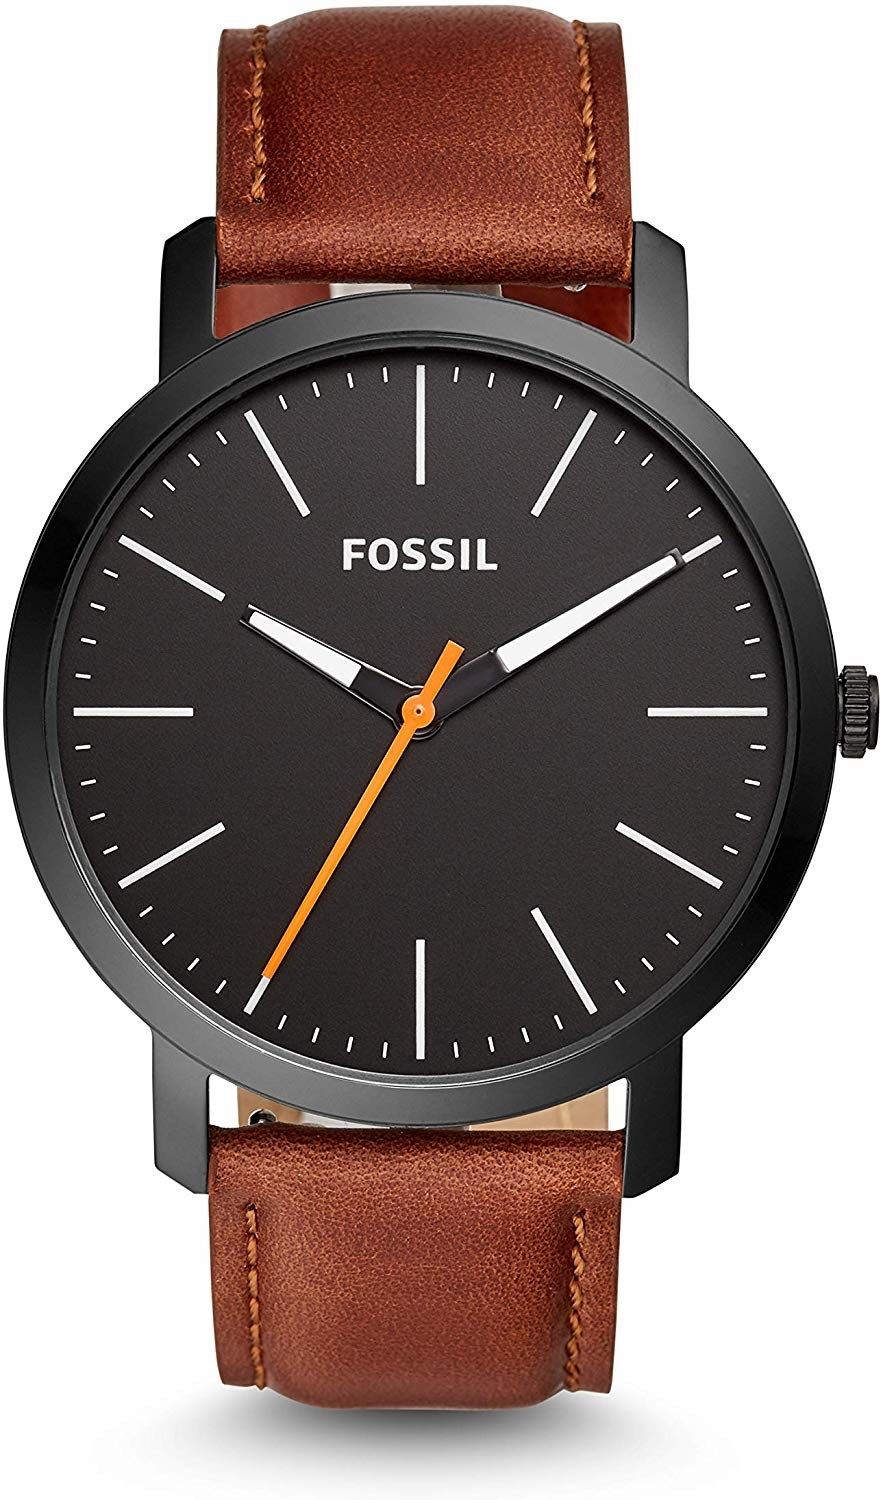 A watch with a black dial and brown leather straps.